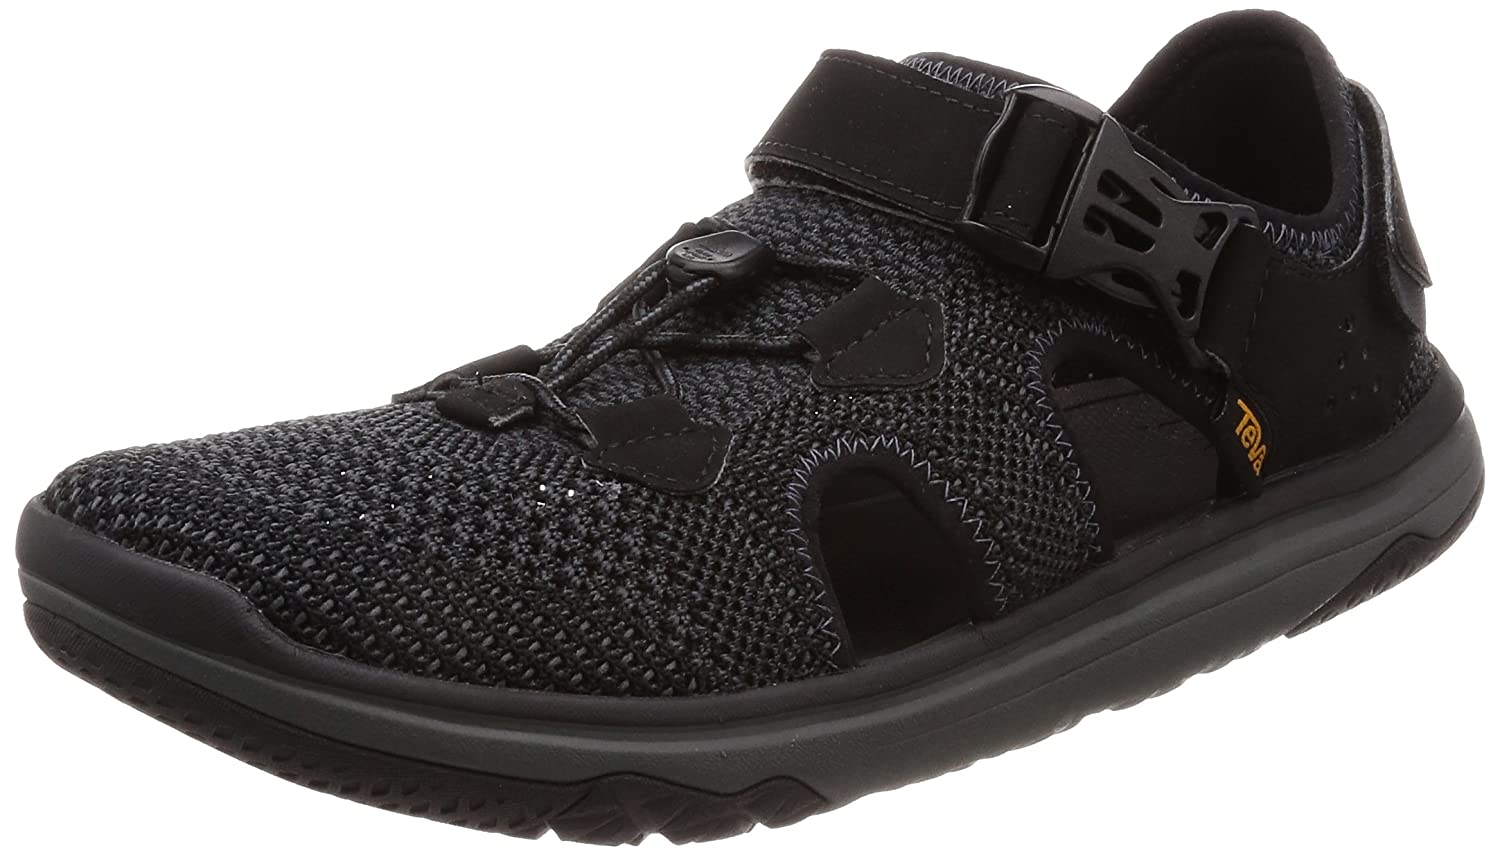 Teva - Men's Terra-Float Travel Knit - Black/Grey - 7 B071GYKVVS 11 W US|Black/Grey